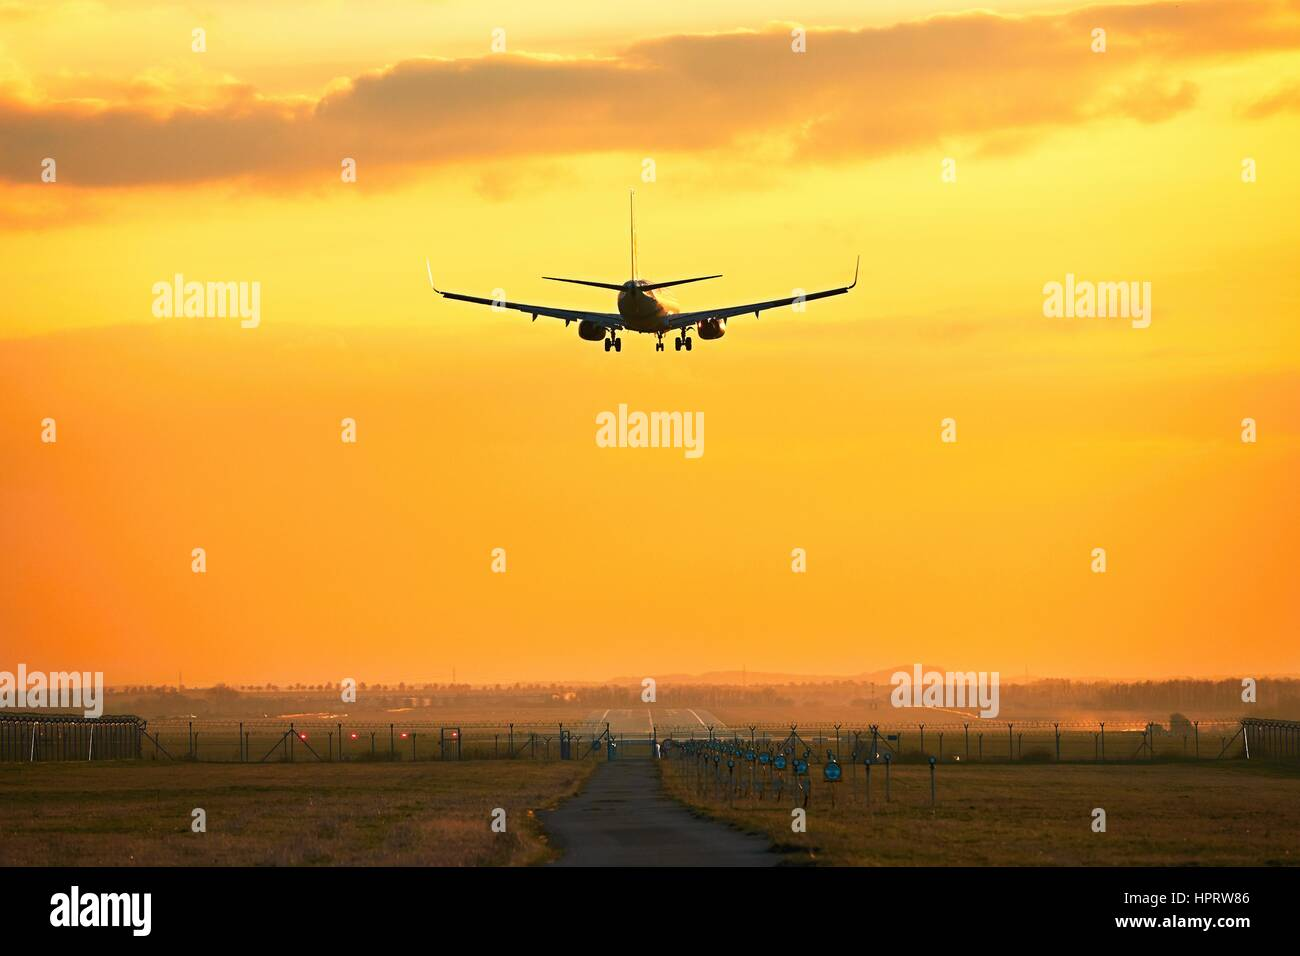 Silhouette of the airplane during landing at the airport - Stock Image